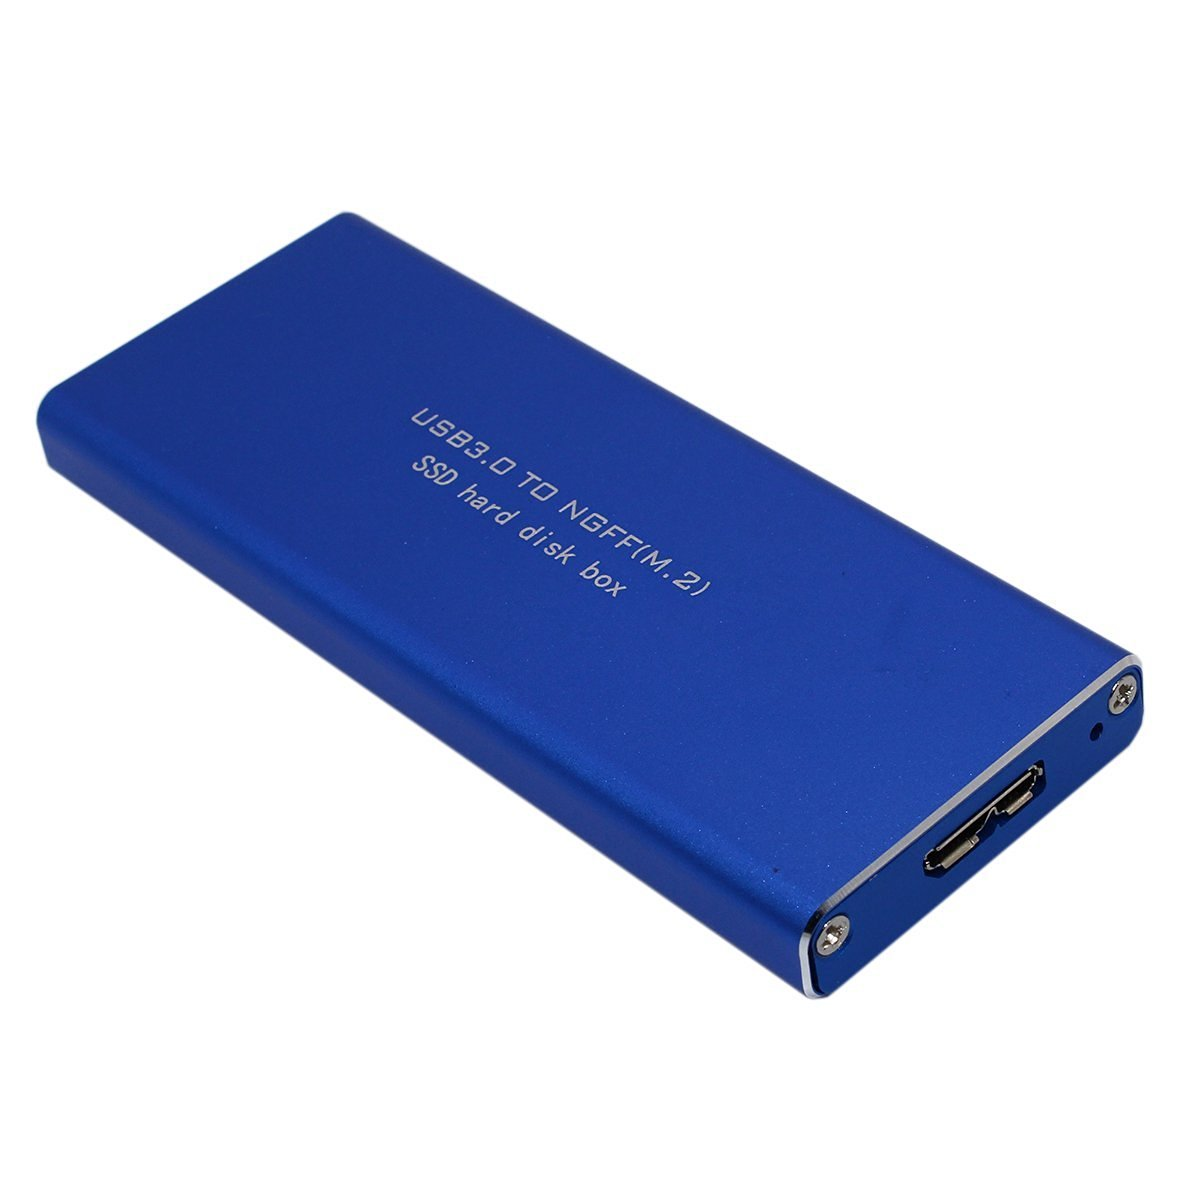 SNANSHI USB 3.0 to NGFF M.2 B Key SSD Hard Disk Box External Enclosure Case Blue